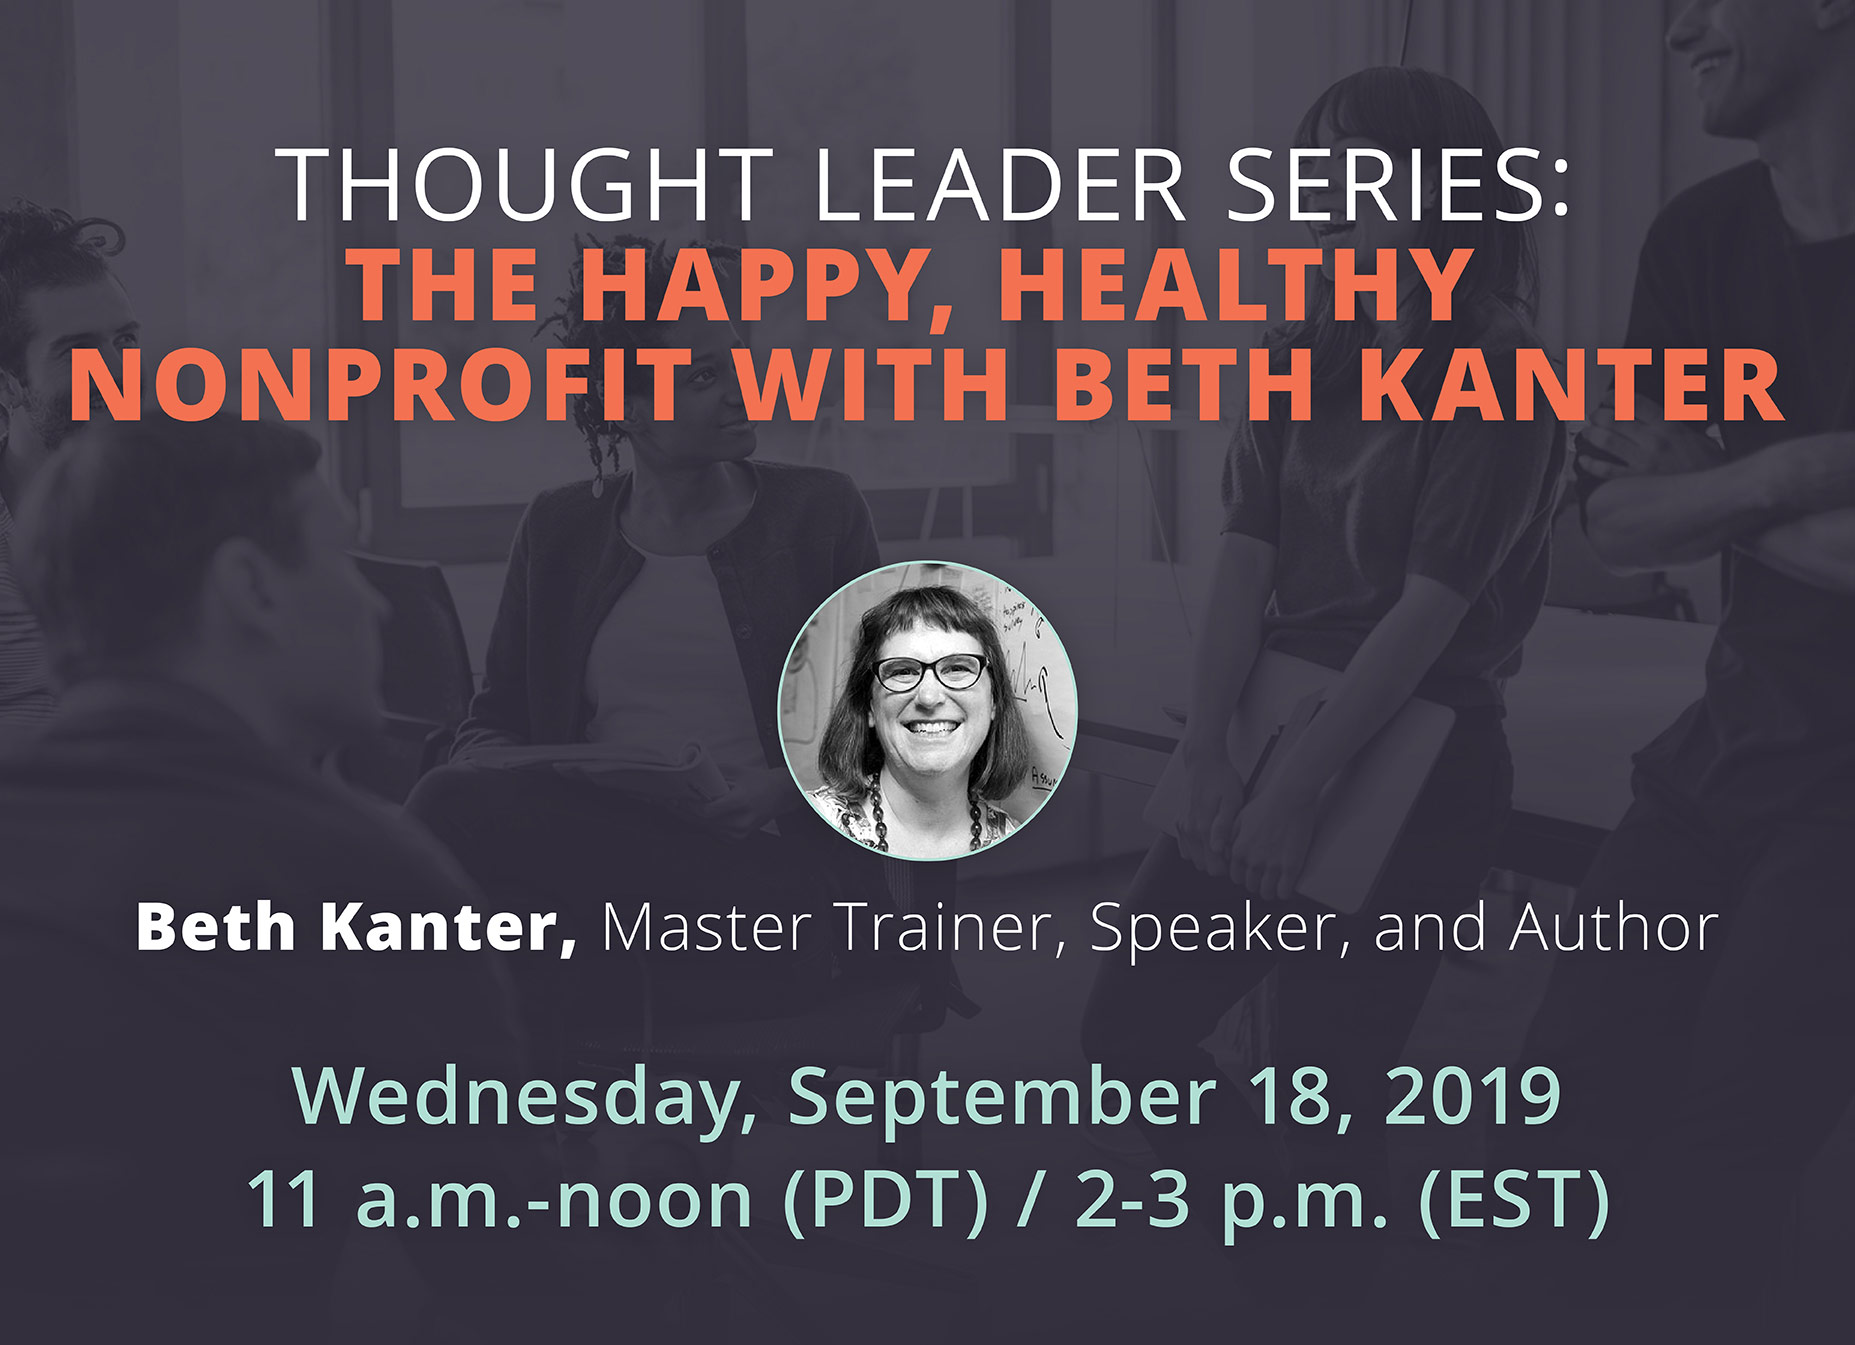 The Happy, Healthy Nonprofit with Beth Kanter